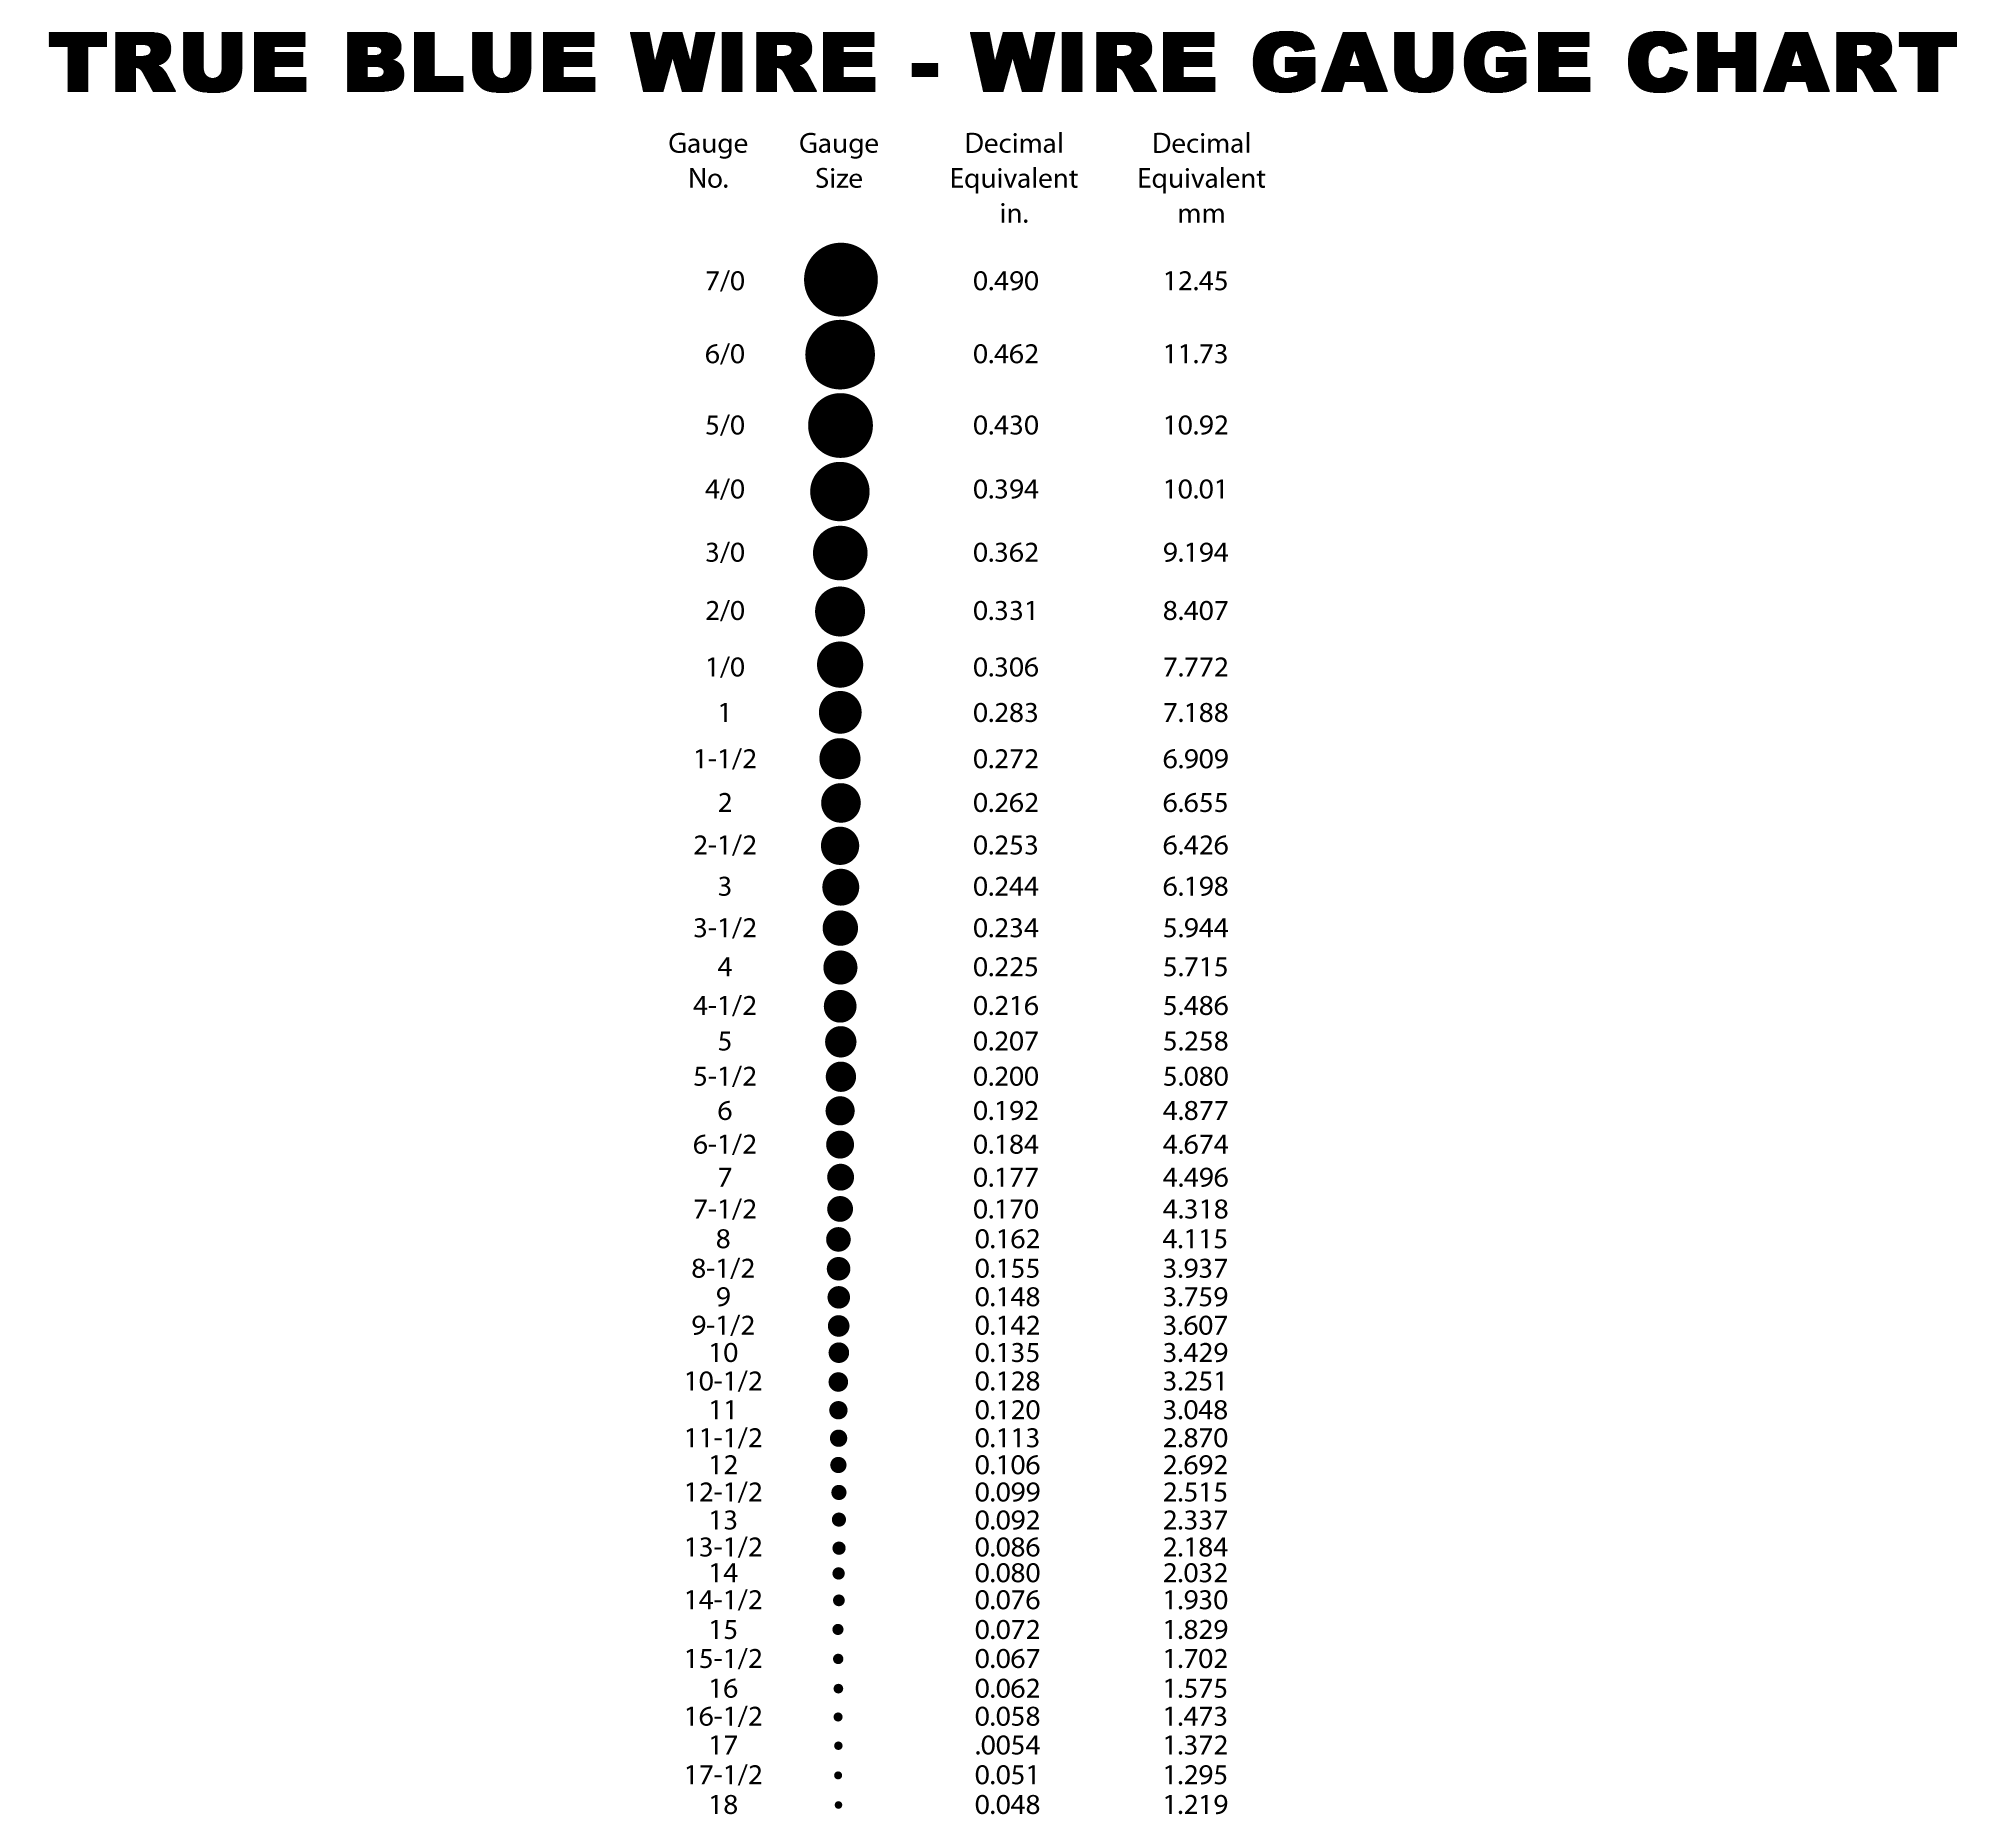 Custom wire stainless steel wire true blue wire gauge chart keyboard keysfo Image collections